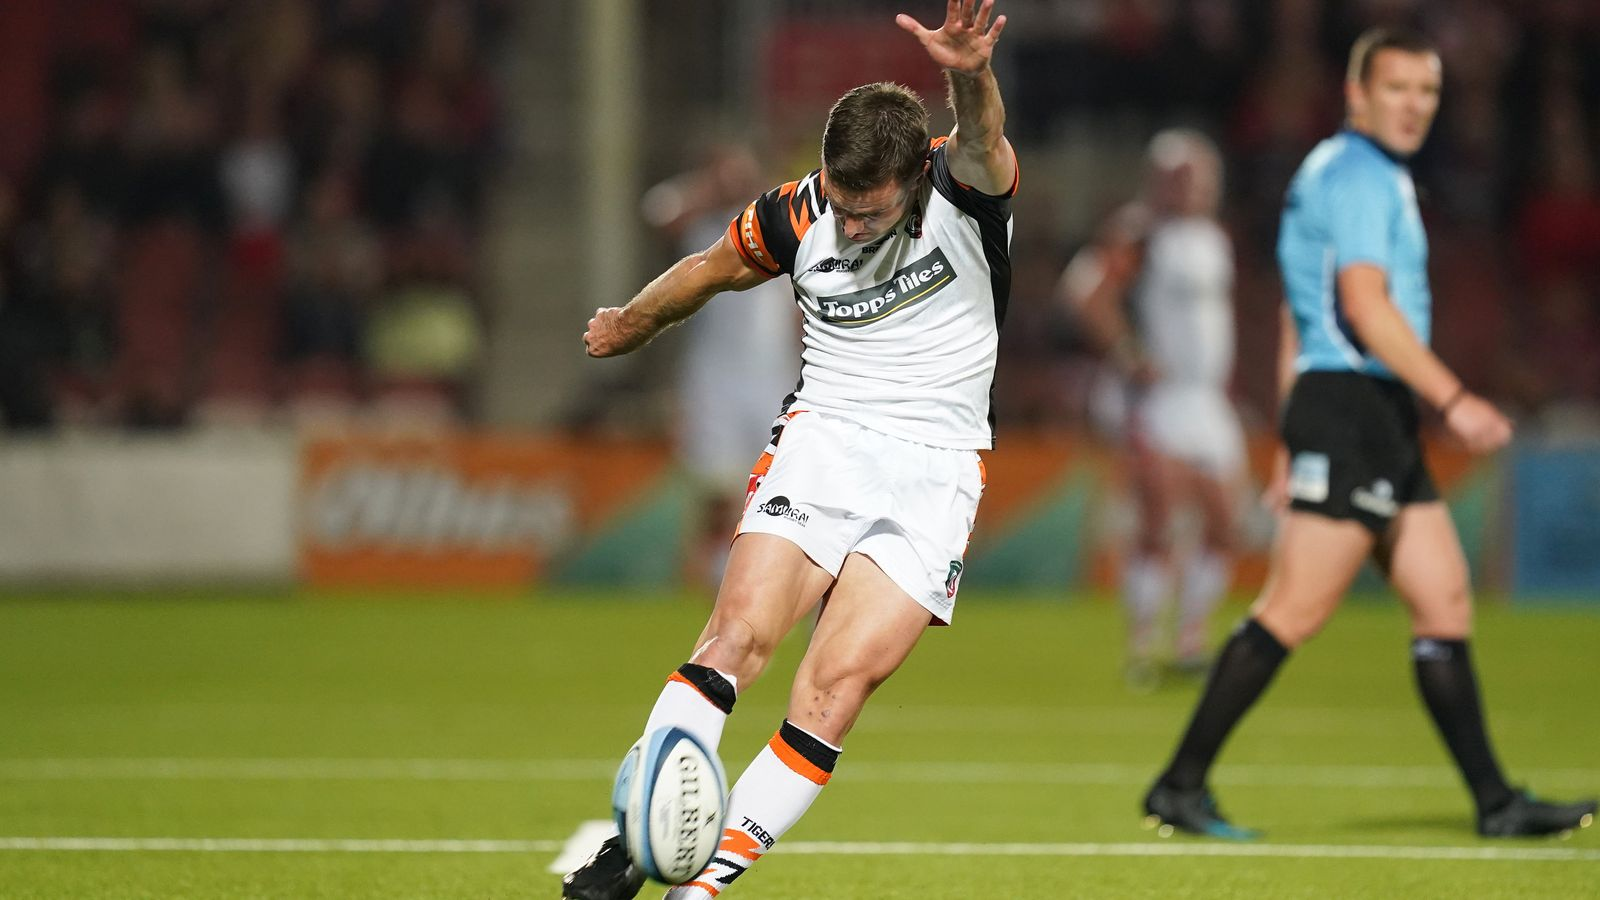 Gallagher Premiership: George Ford helps Leicester Tigers to 33-26 win at Gloucester after England omission